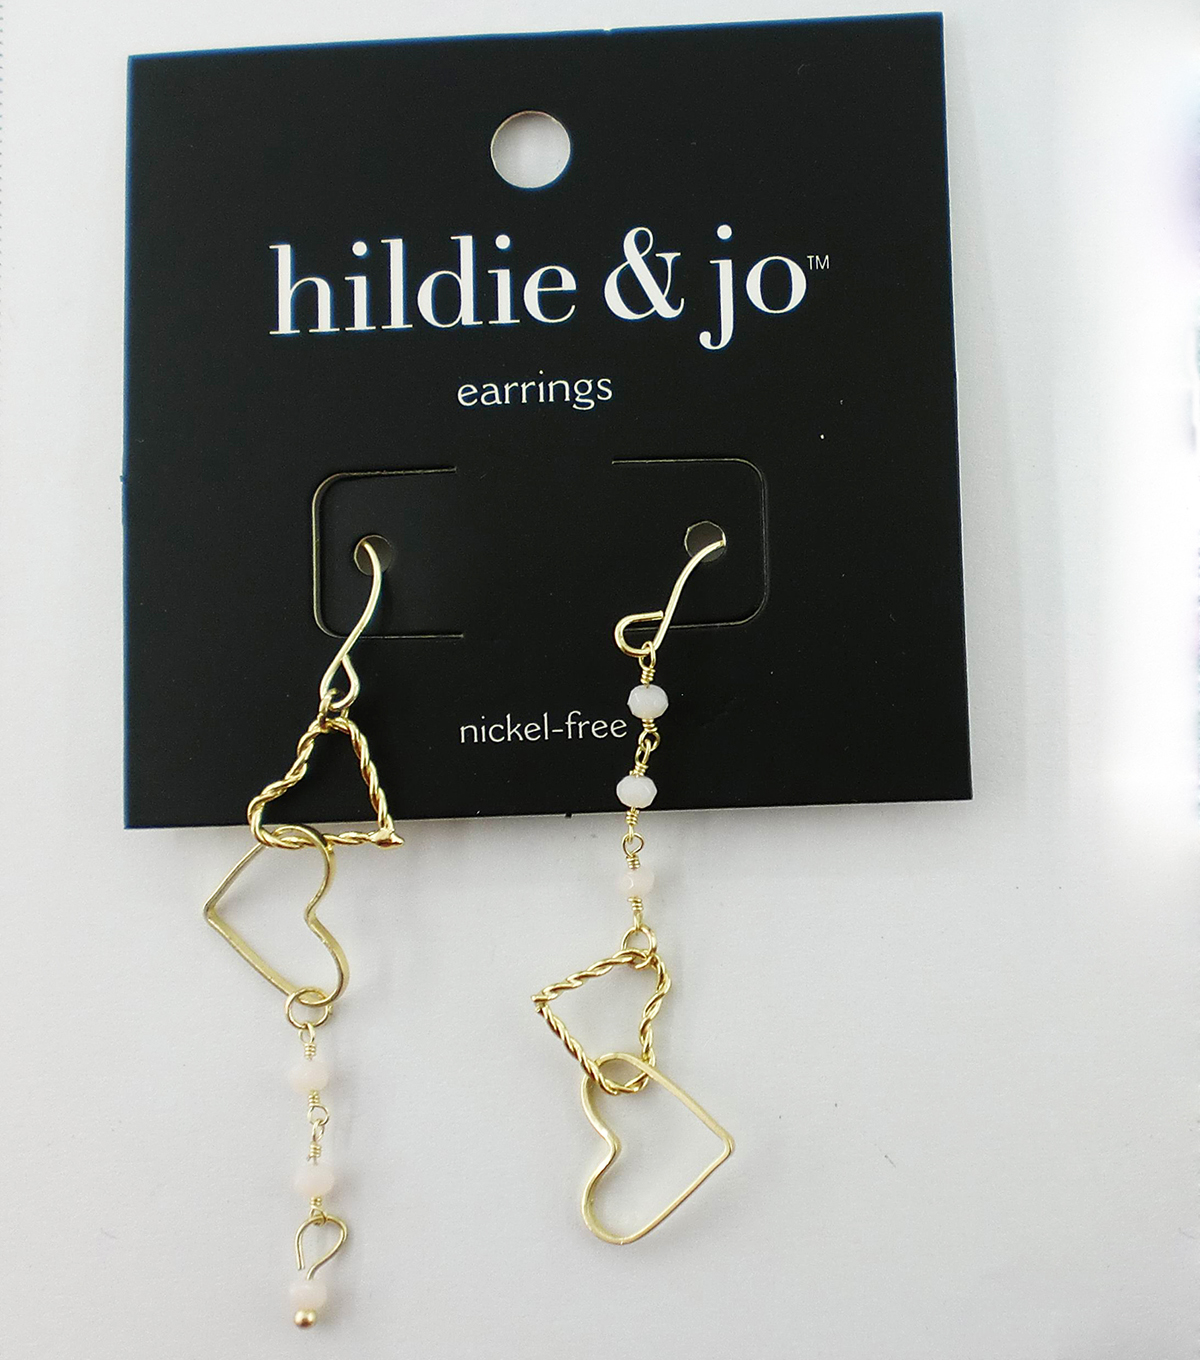 hildie & jo Linking Hearts Gold Earrings-Ivory Stones